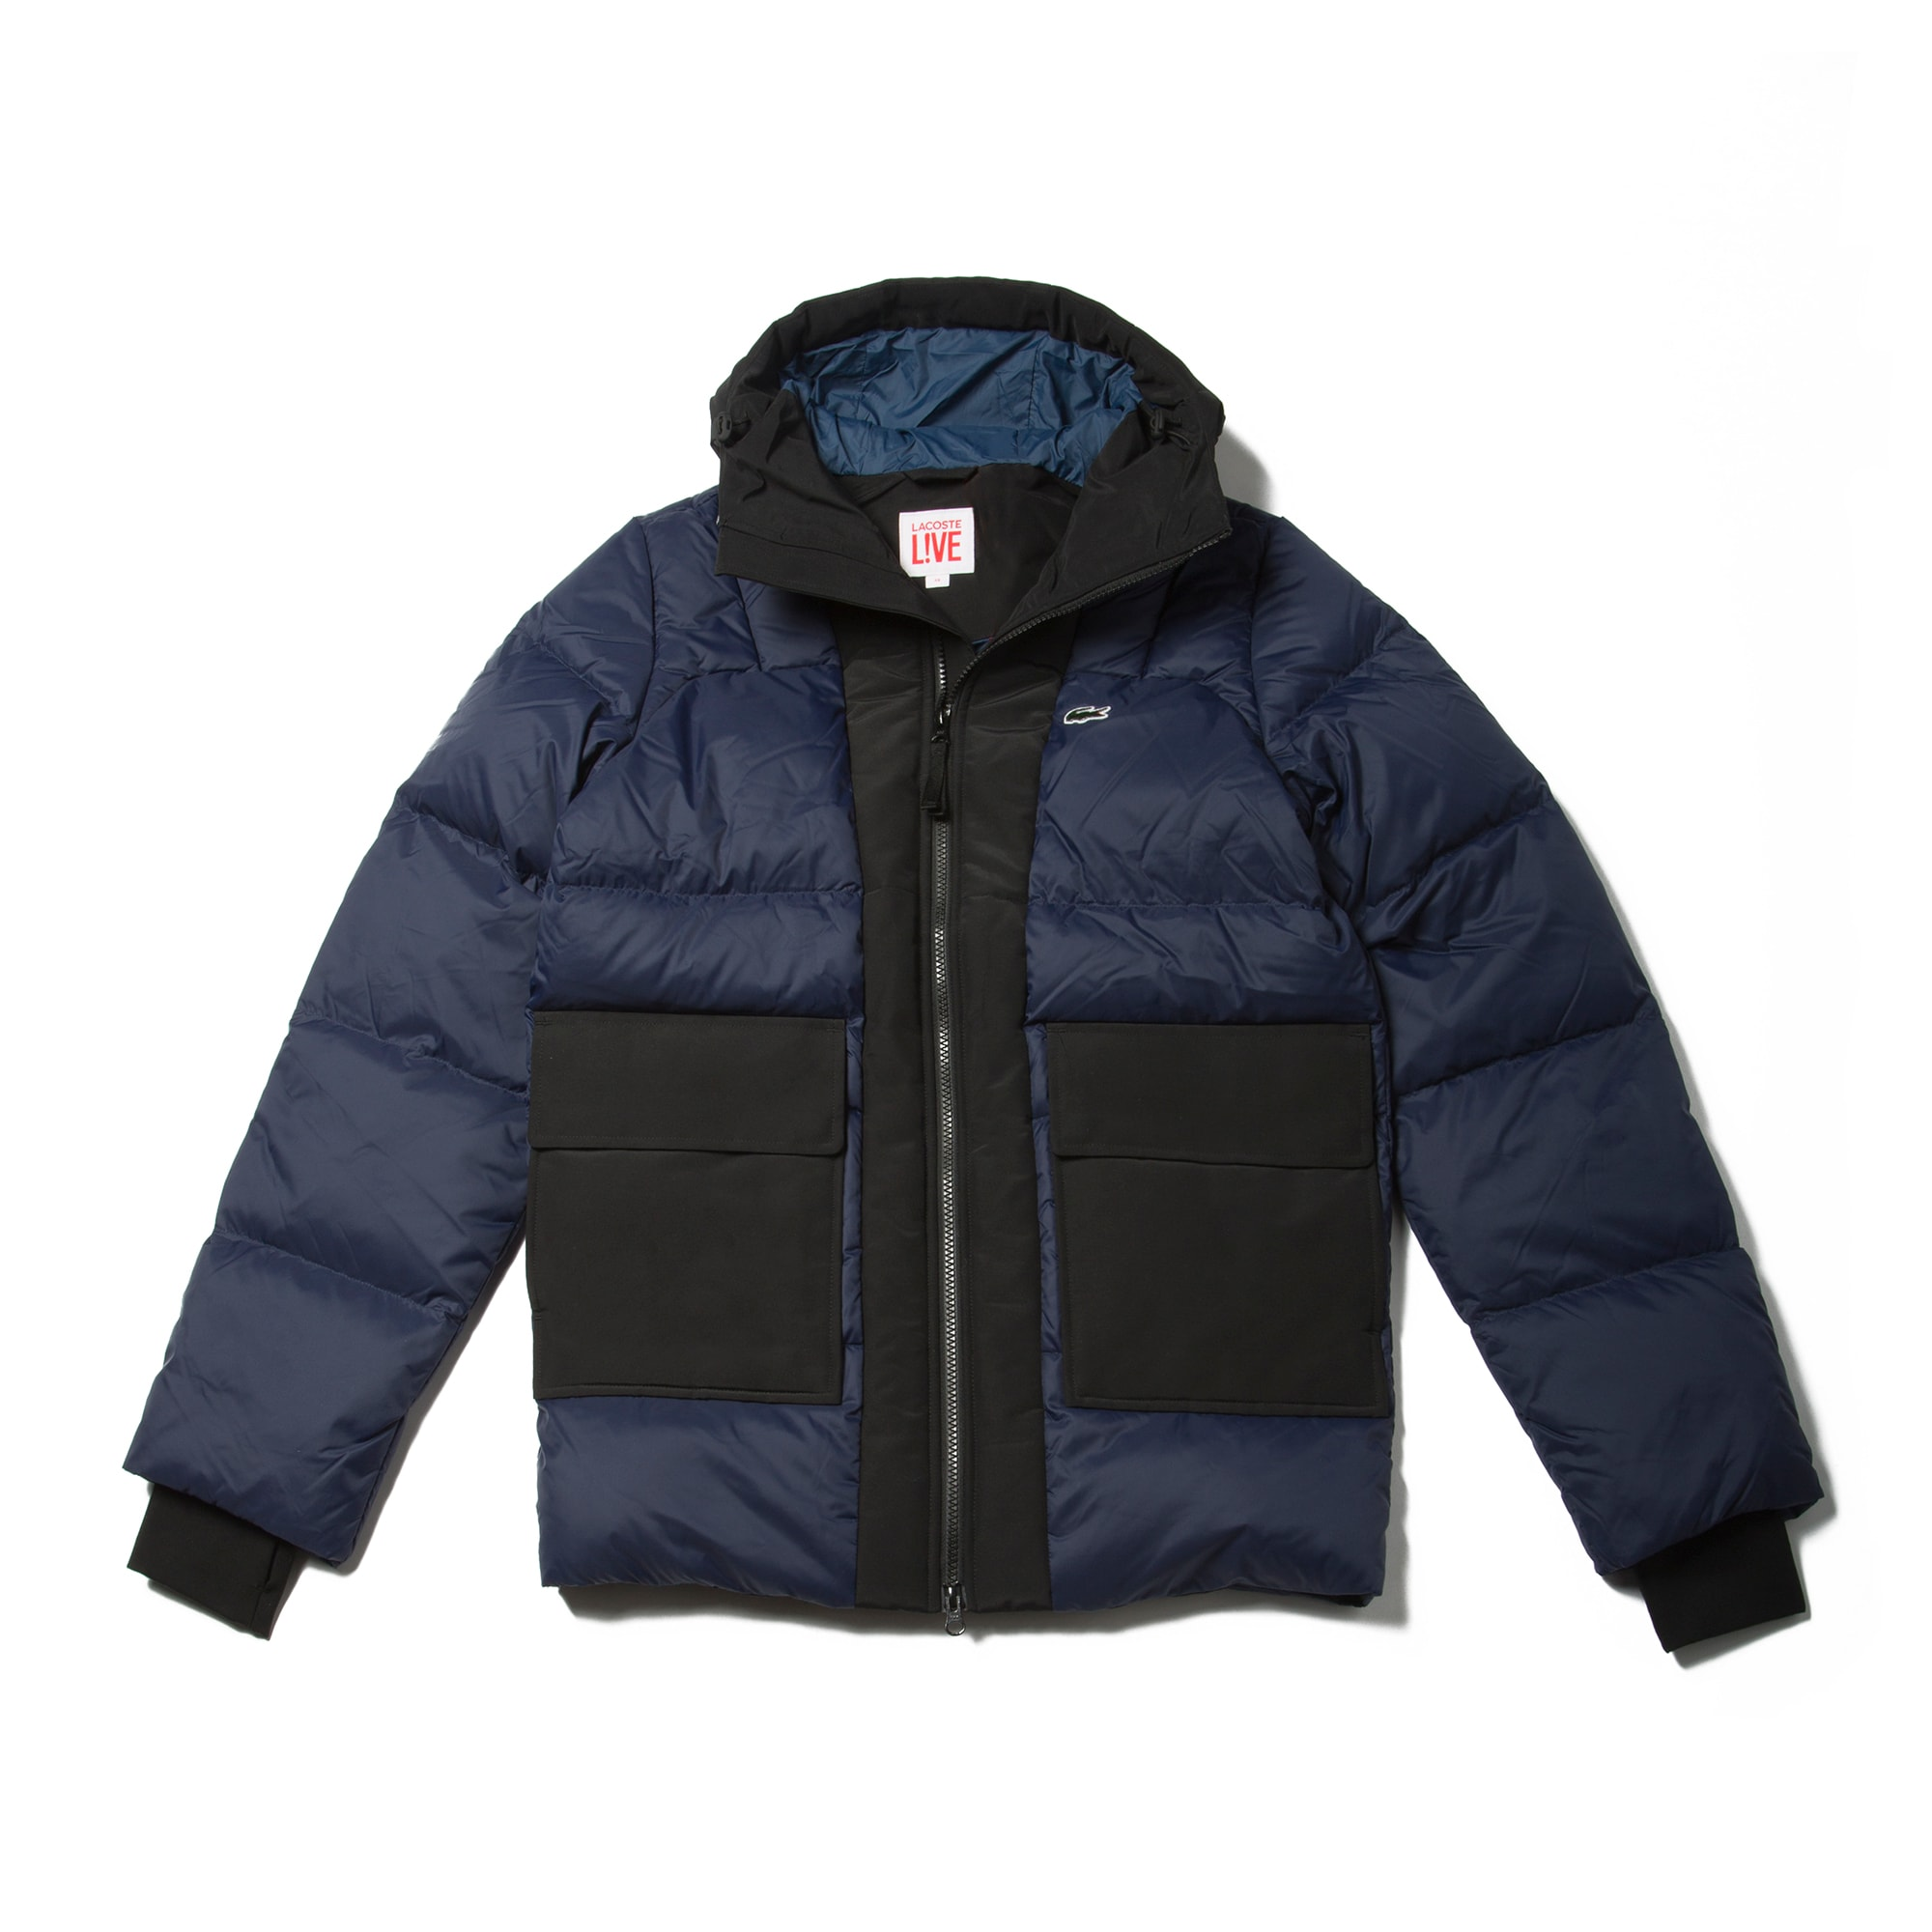 Men's  LIVE Hooded Colorblock Quilted Jacket